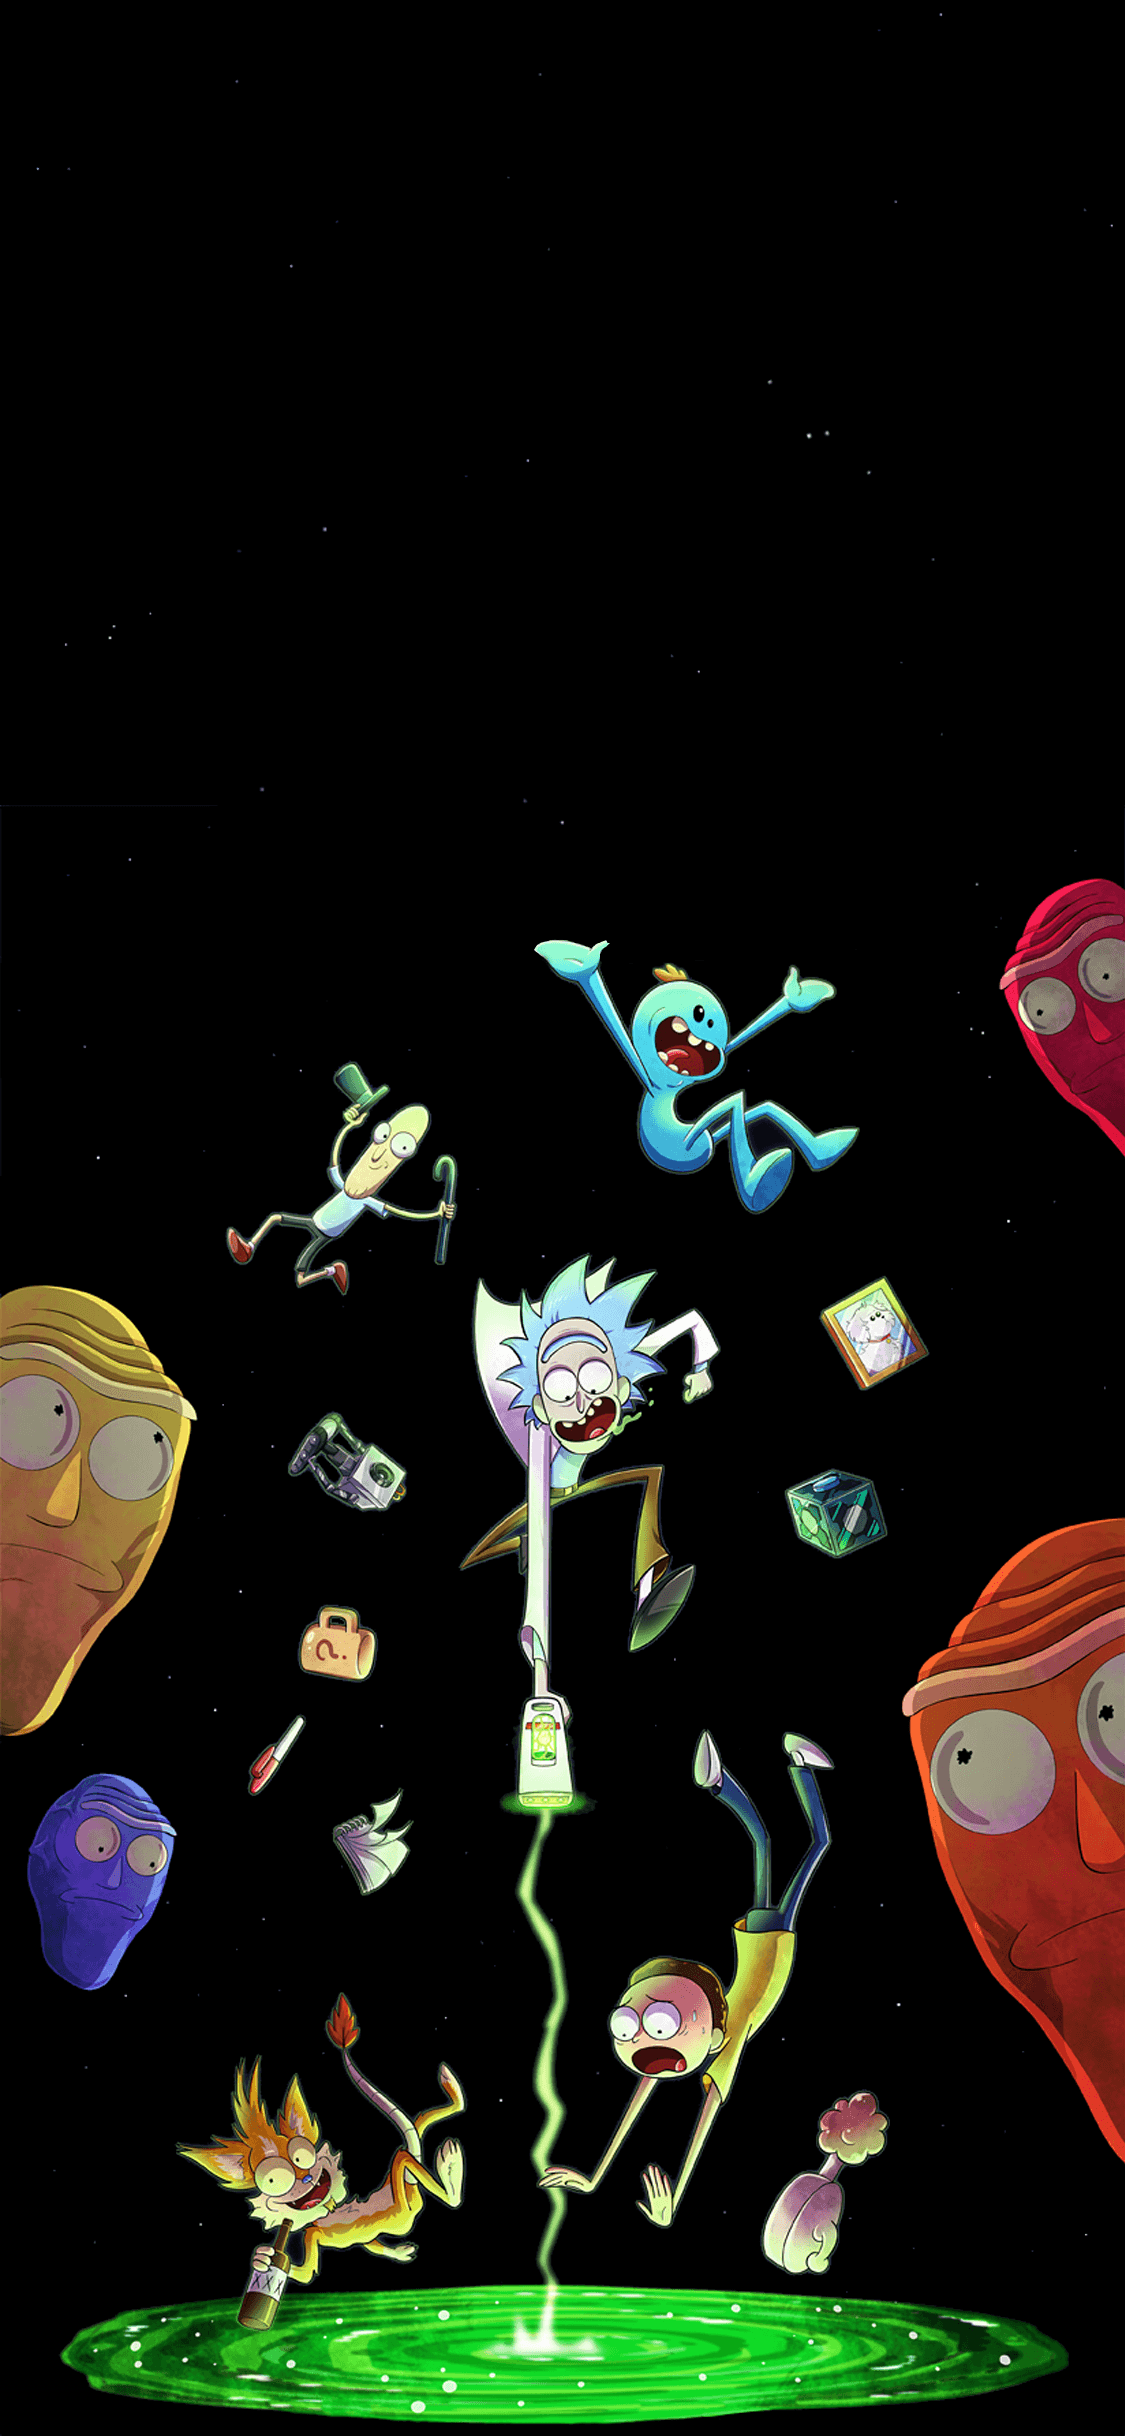 Rick And Morty Iphone Wallpapers Top Free Rick And Morty Iphone